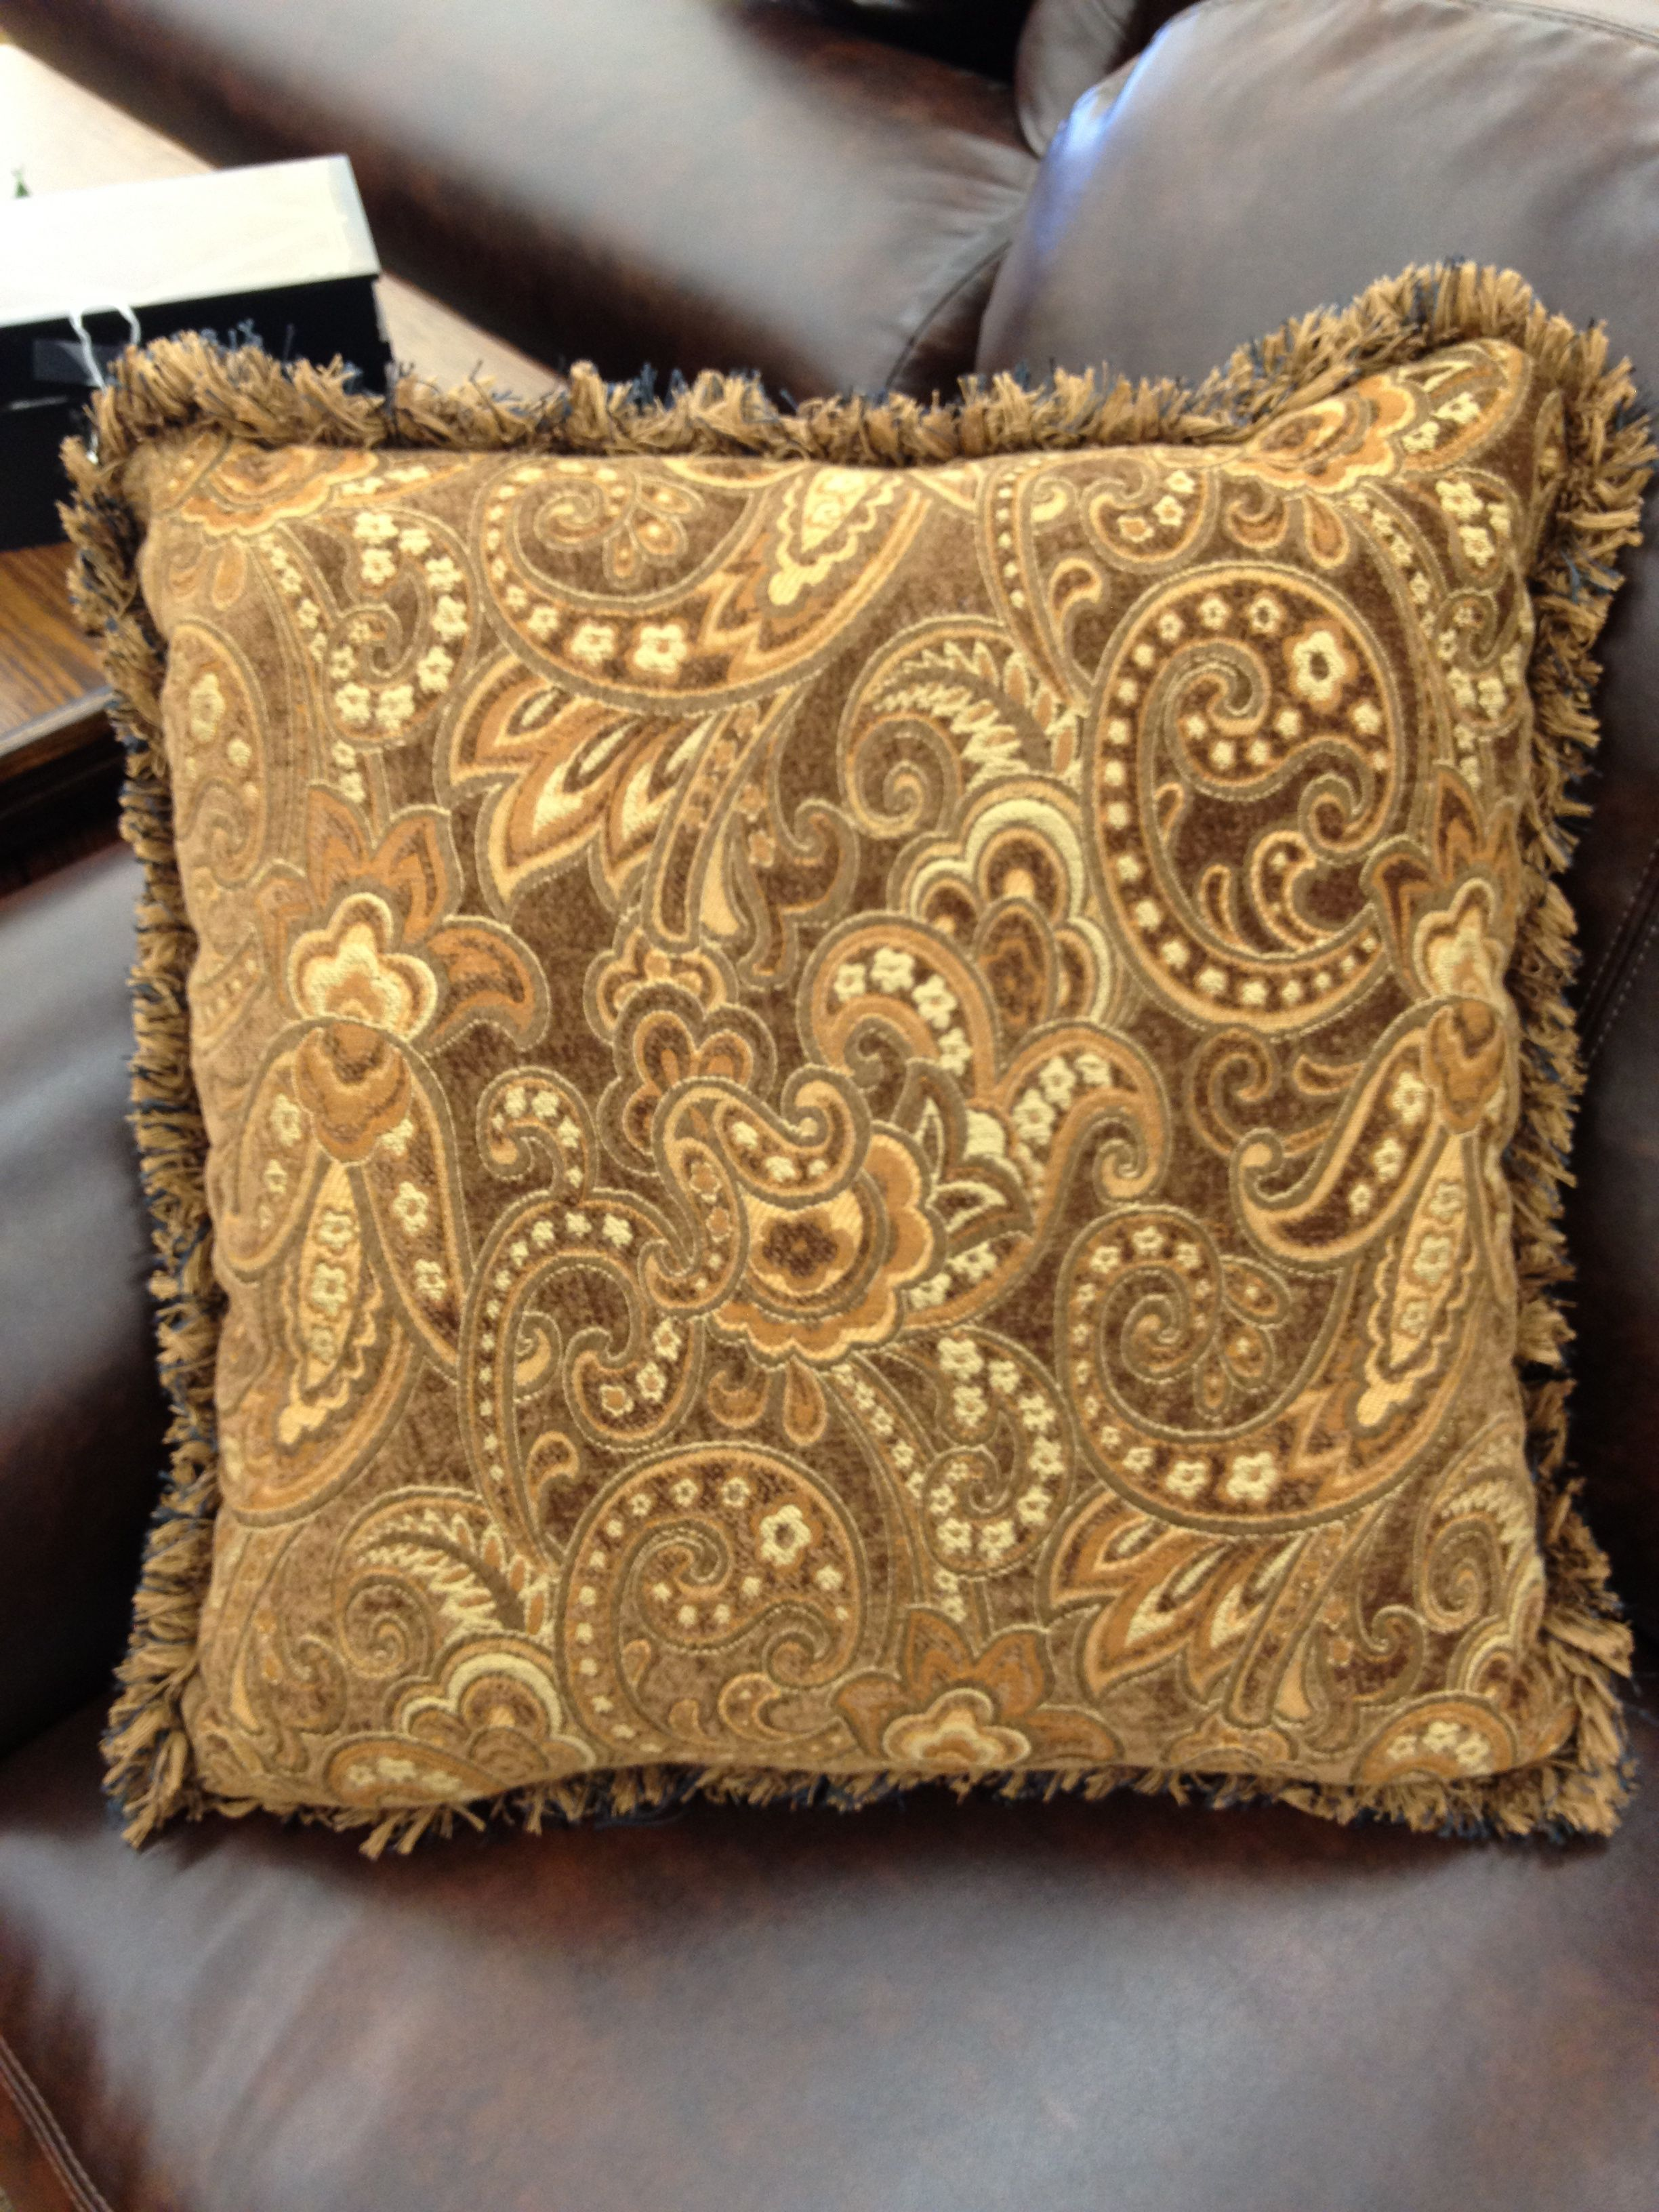 Decorative Pillows With Fringe : Paisley brown patterned throw pillow with fringe. Accent Pillows! Throw on the charm ...